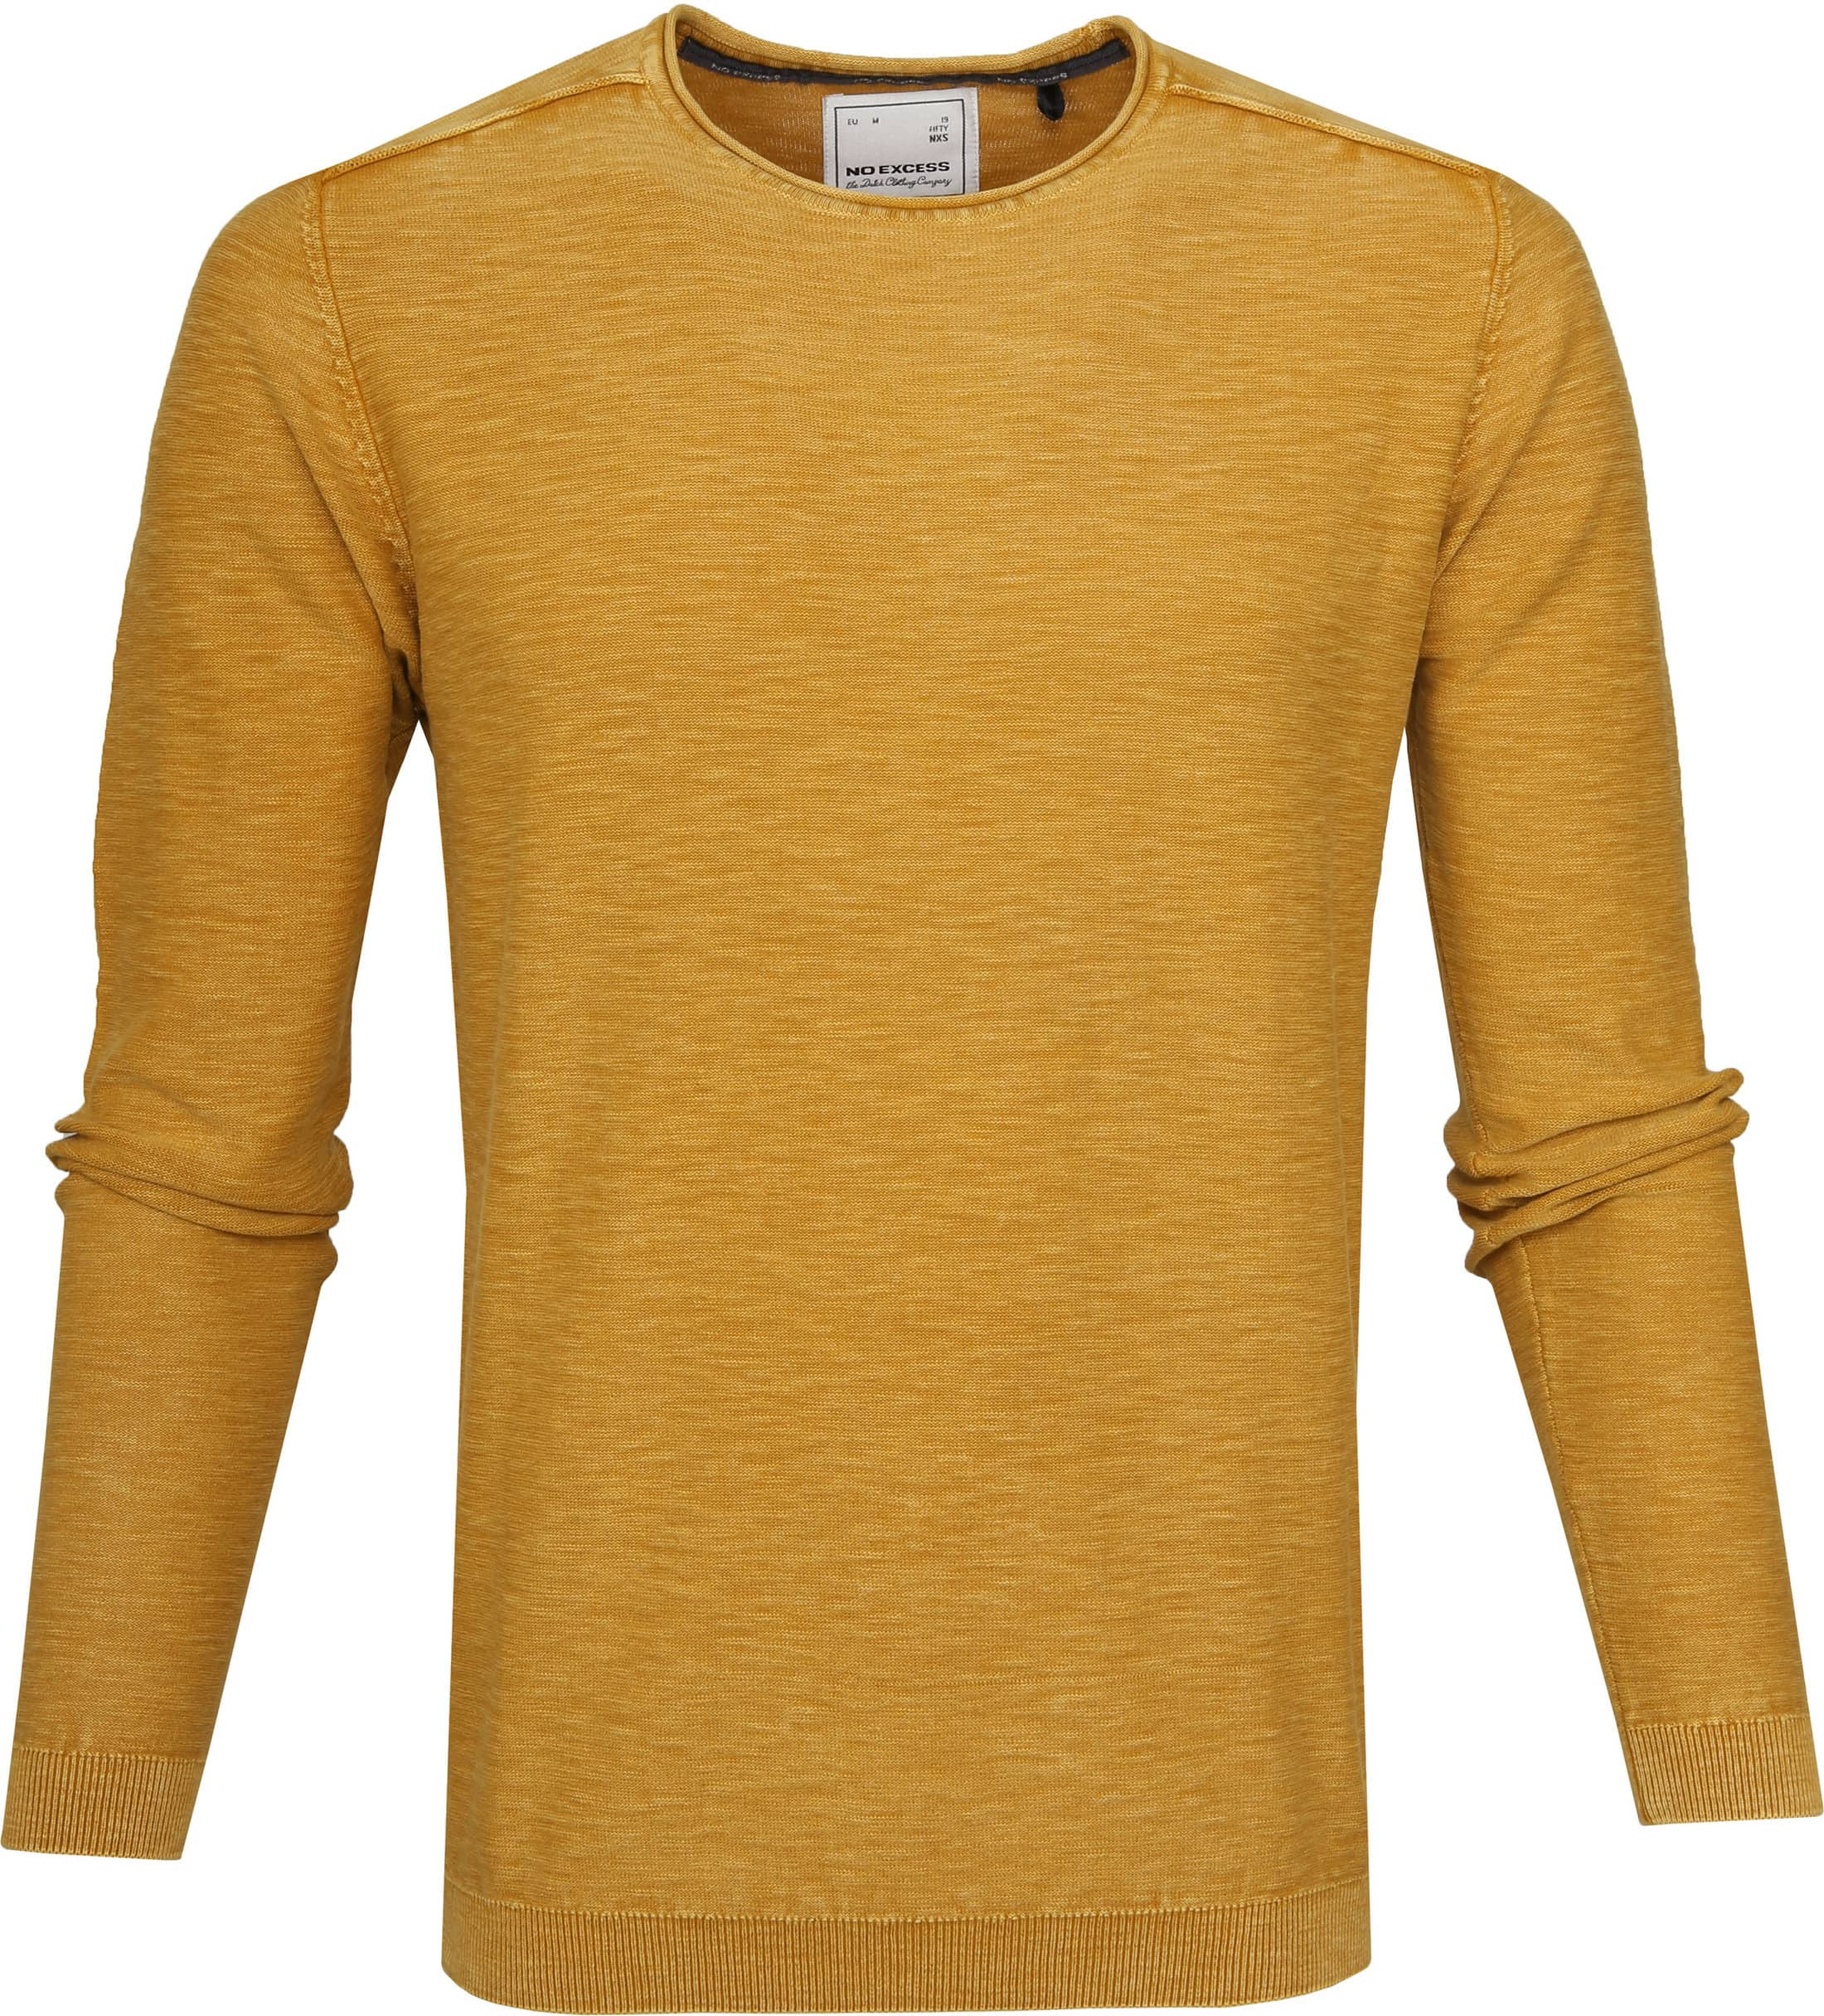 No Excess Pullover Ocre Gelb 92230702 online kaufen   Suitable